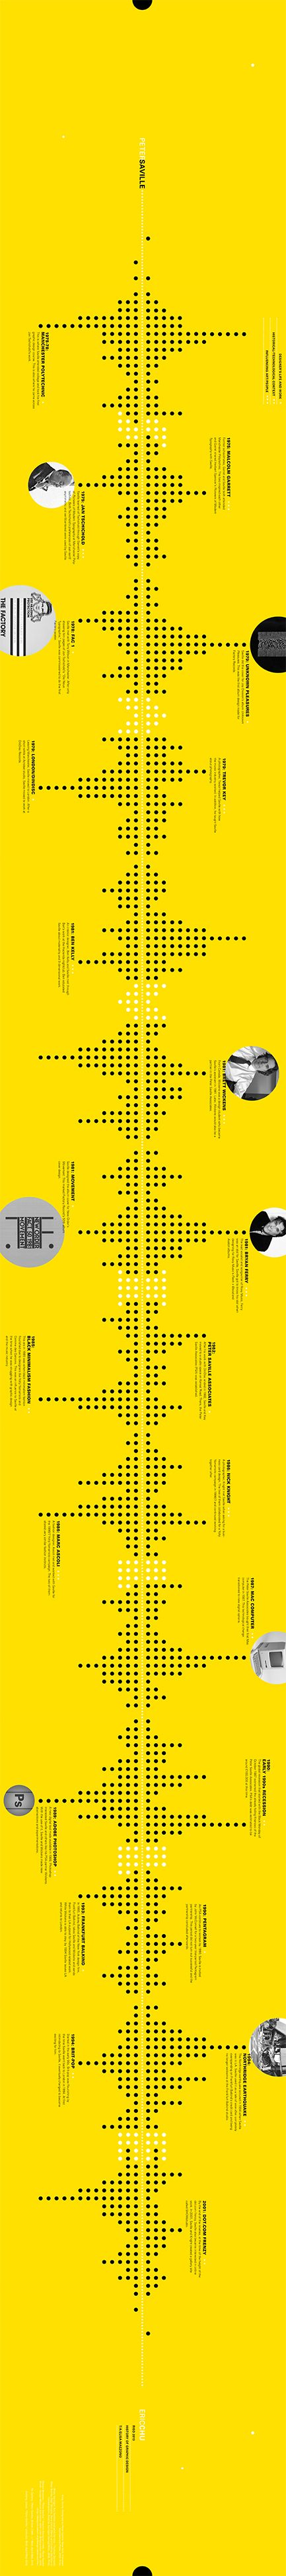 Peter Saville Context Timeline on Behance